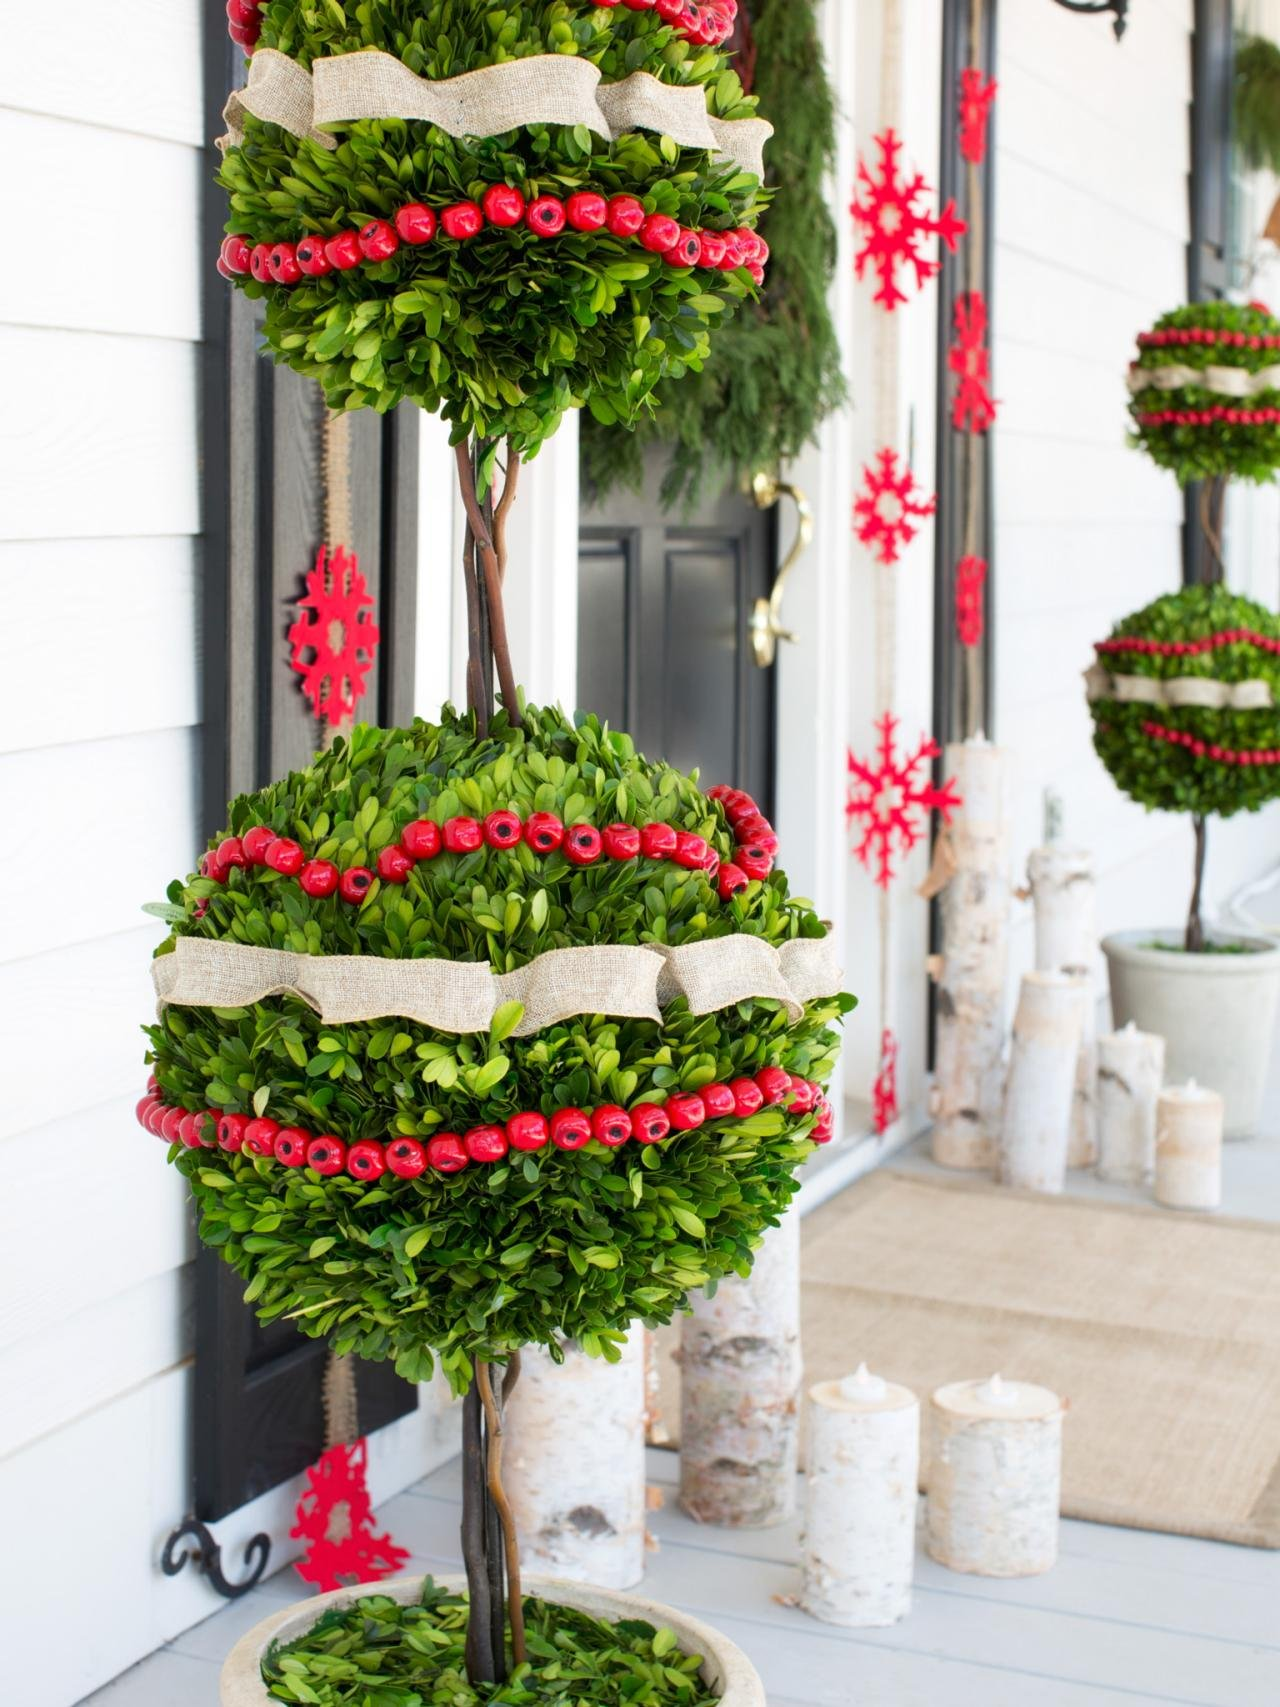 Best Outdoor Christmas Decorations (4)